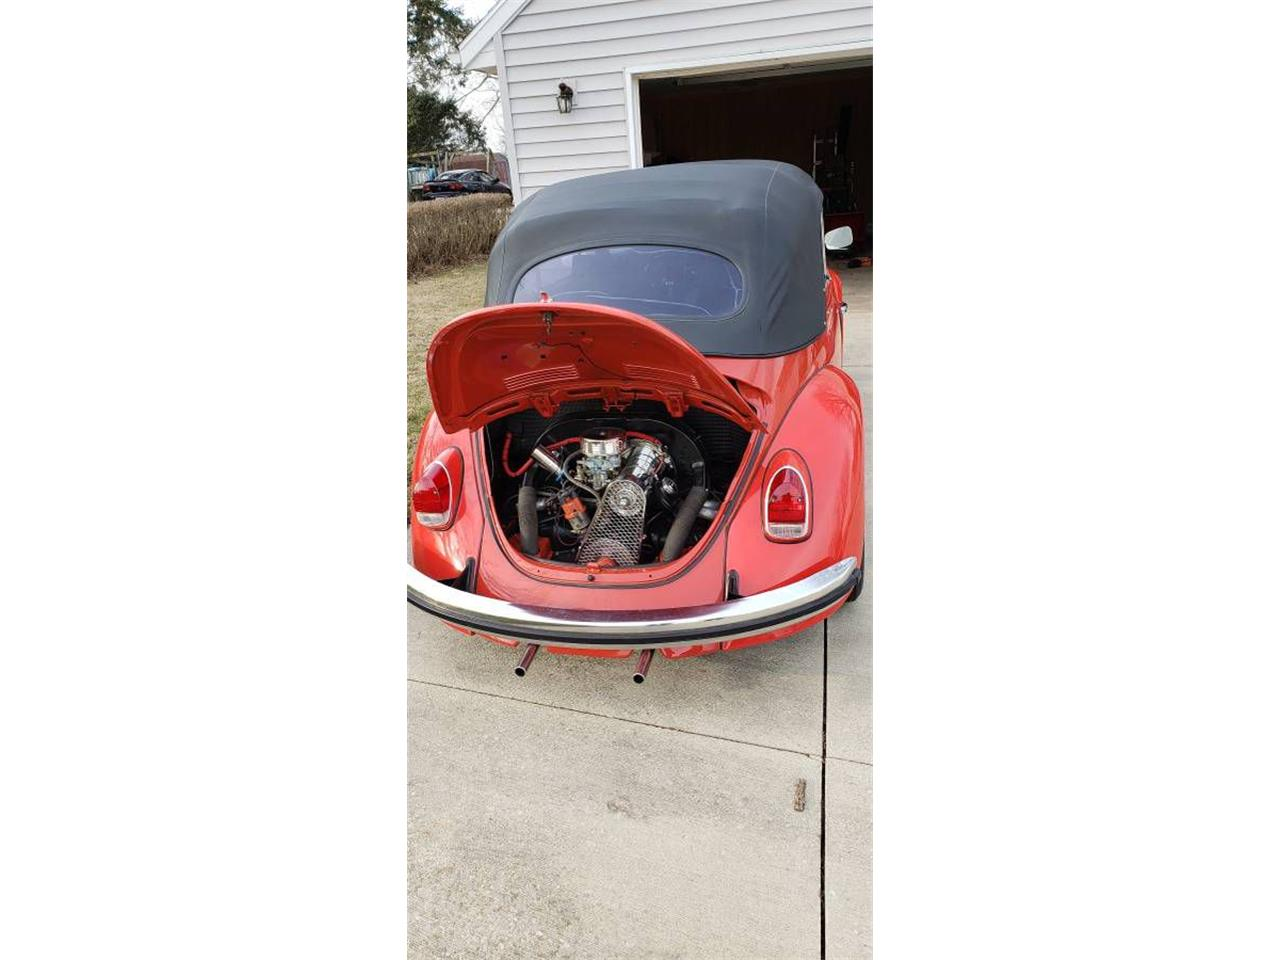 1968 Volkswagen Beetle for sale in West Pittston, PA – photo 10